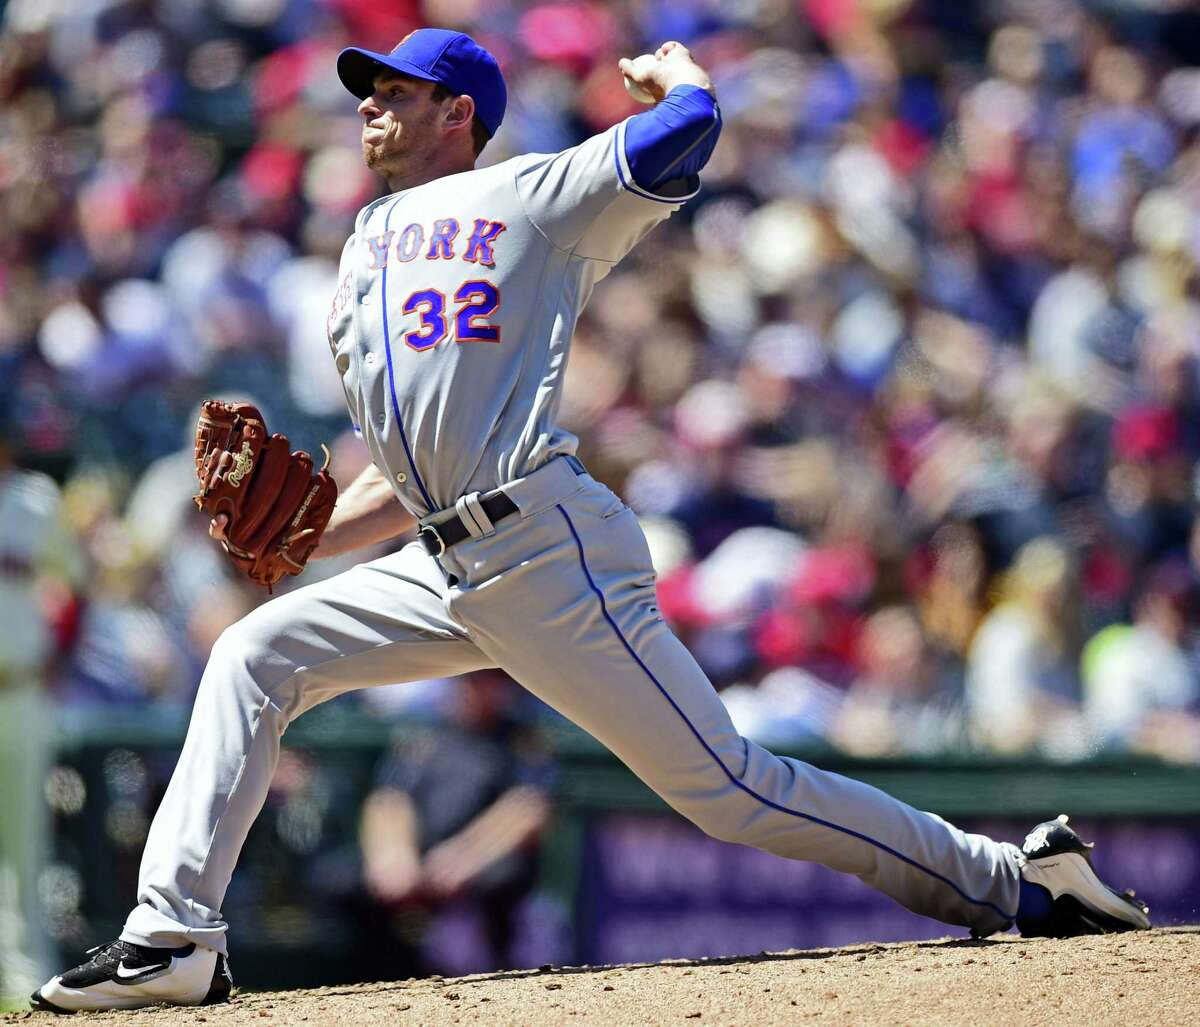 Steven Matz delivers a pitch in the third inning against the Indians on Sunday.